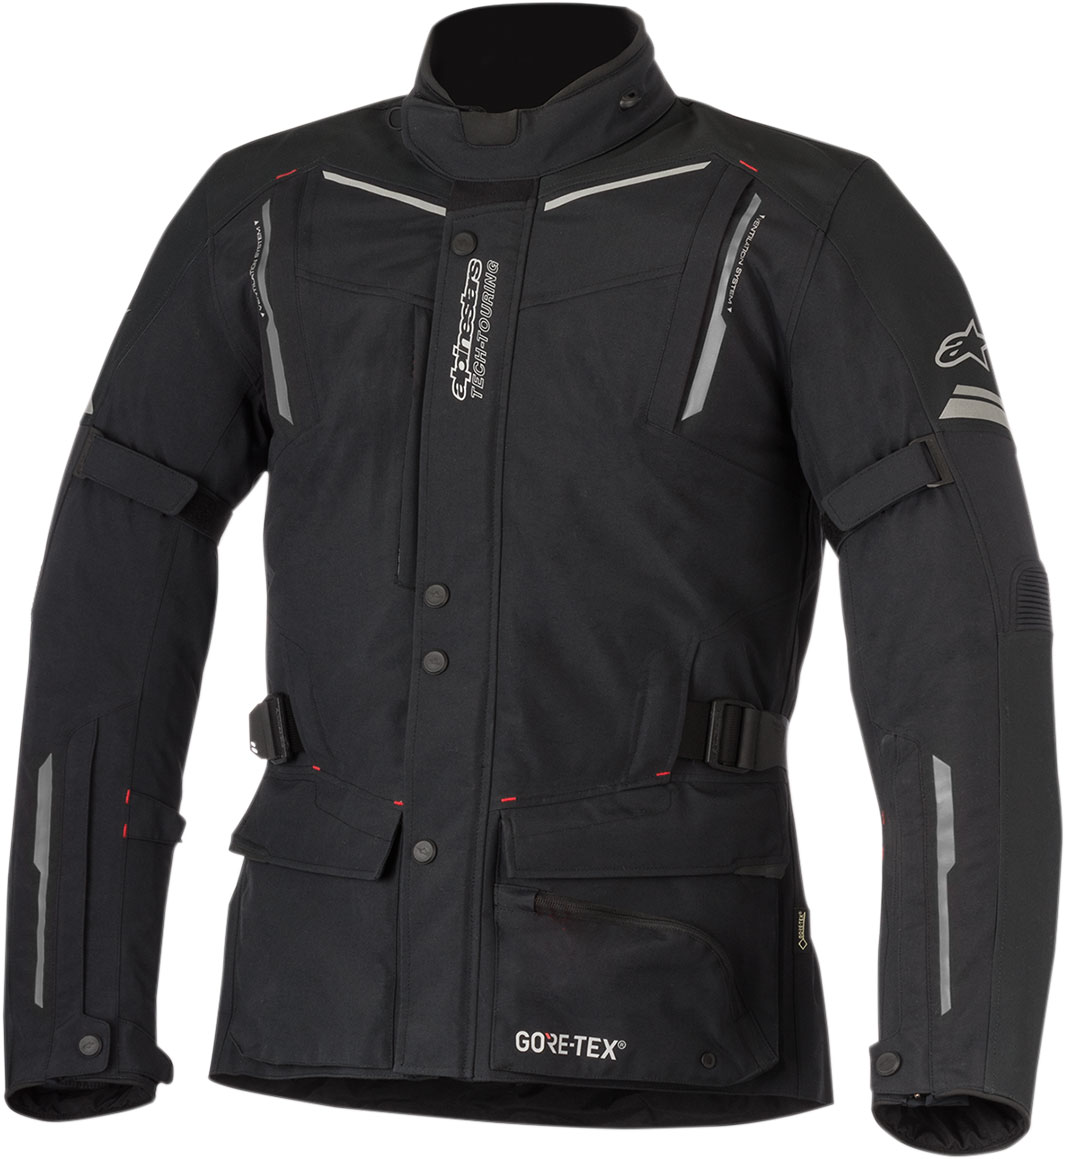 Alpinestars GUAYANA Drystar Adventure-Touring Jacket (Black)